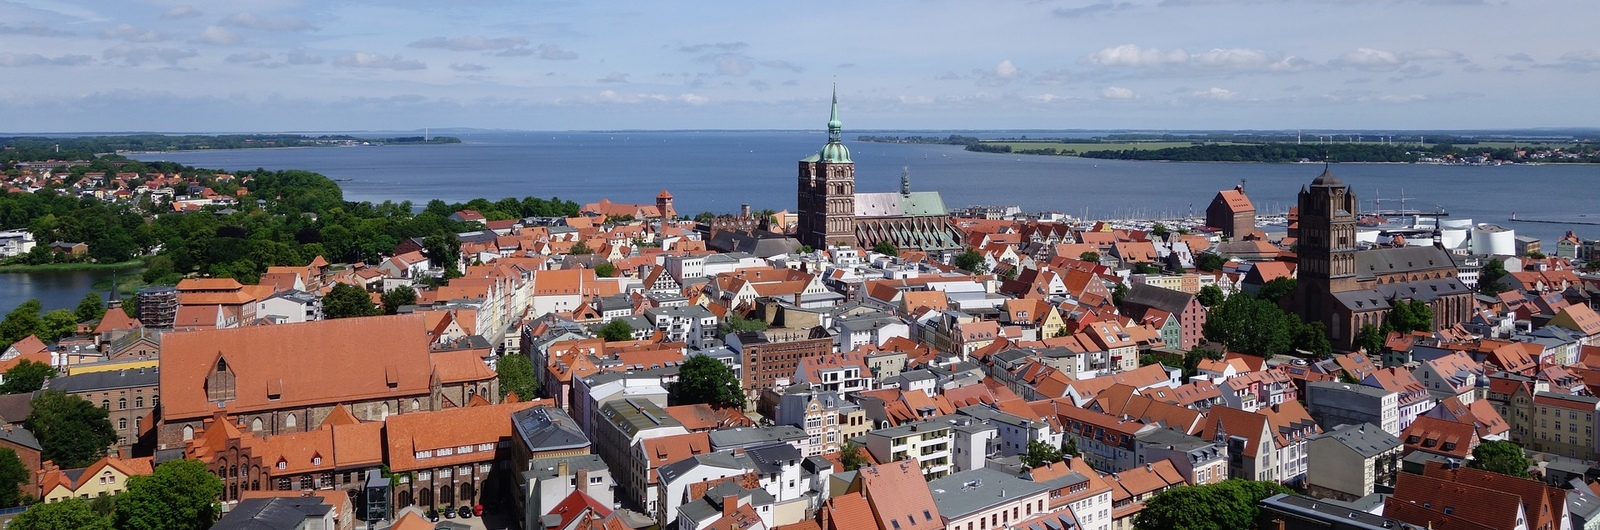 stralsund city header